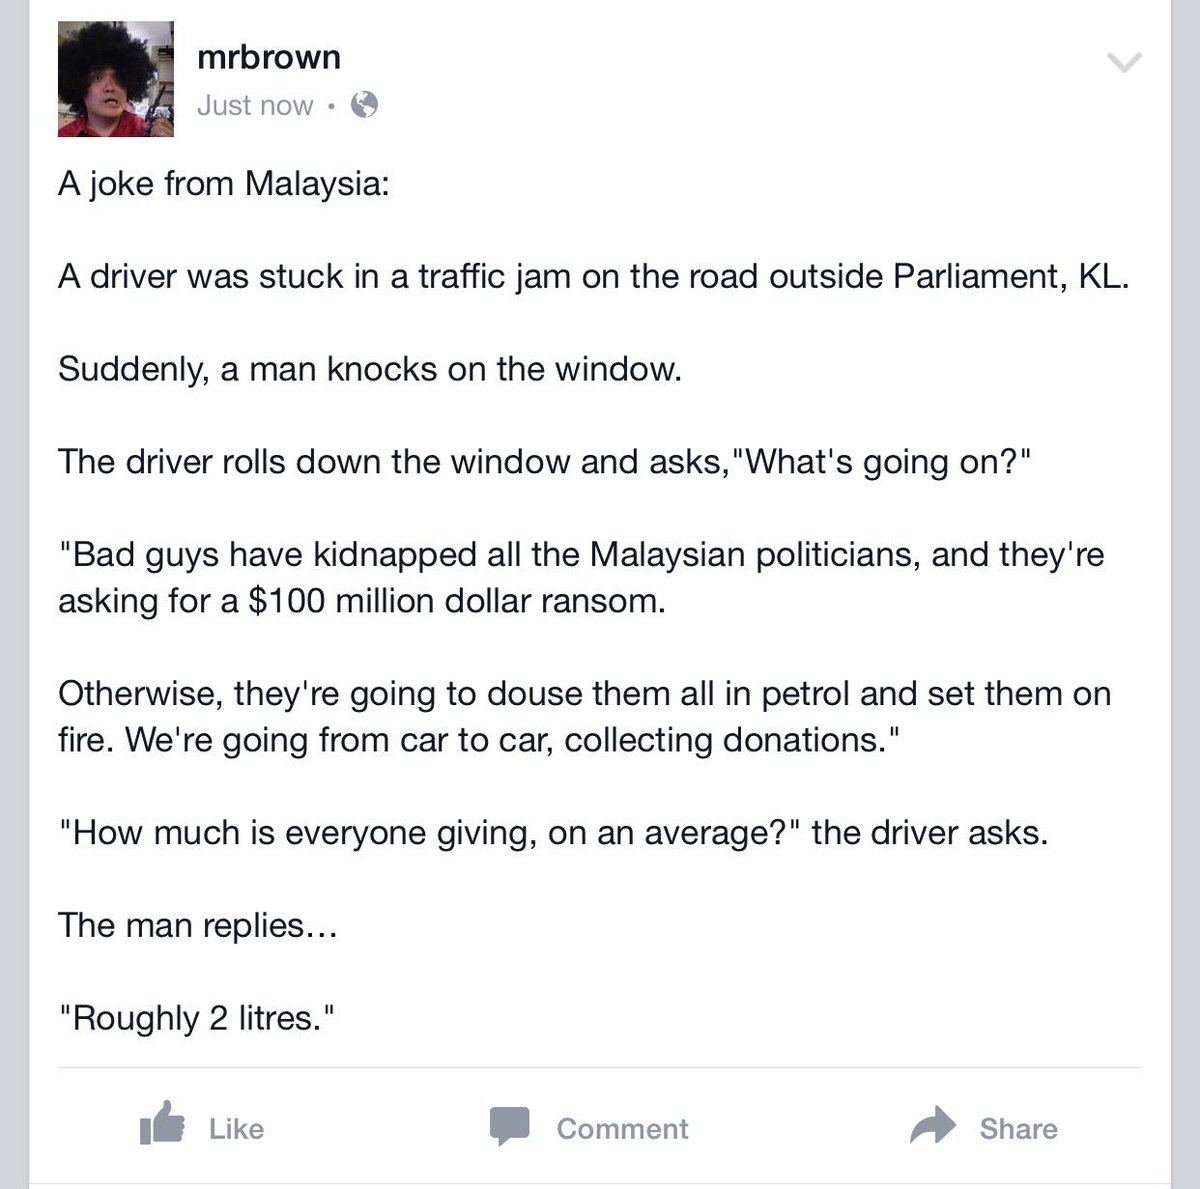 A joke from Malaysia. http://t.co/Hh5jYTE03N